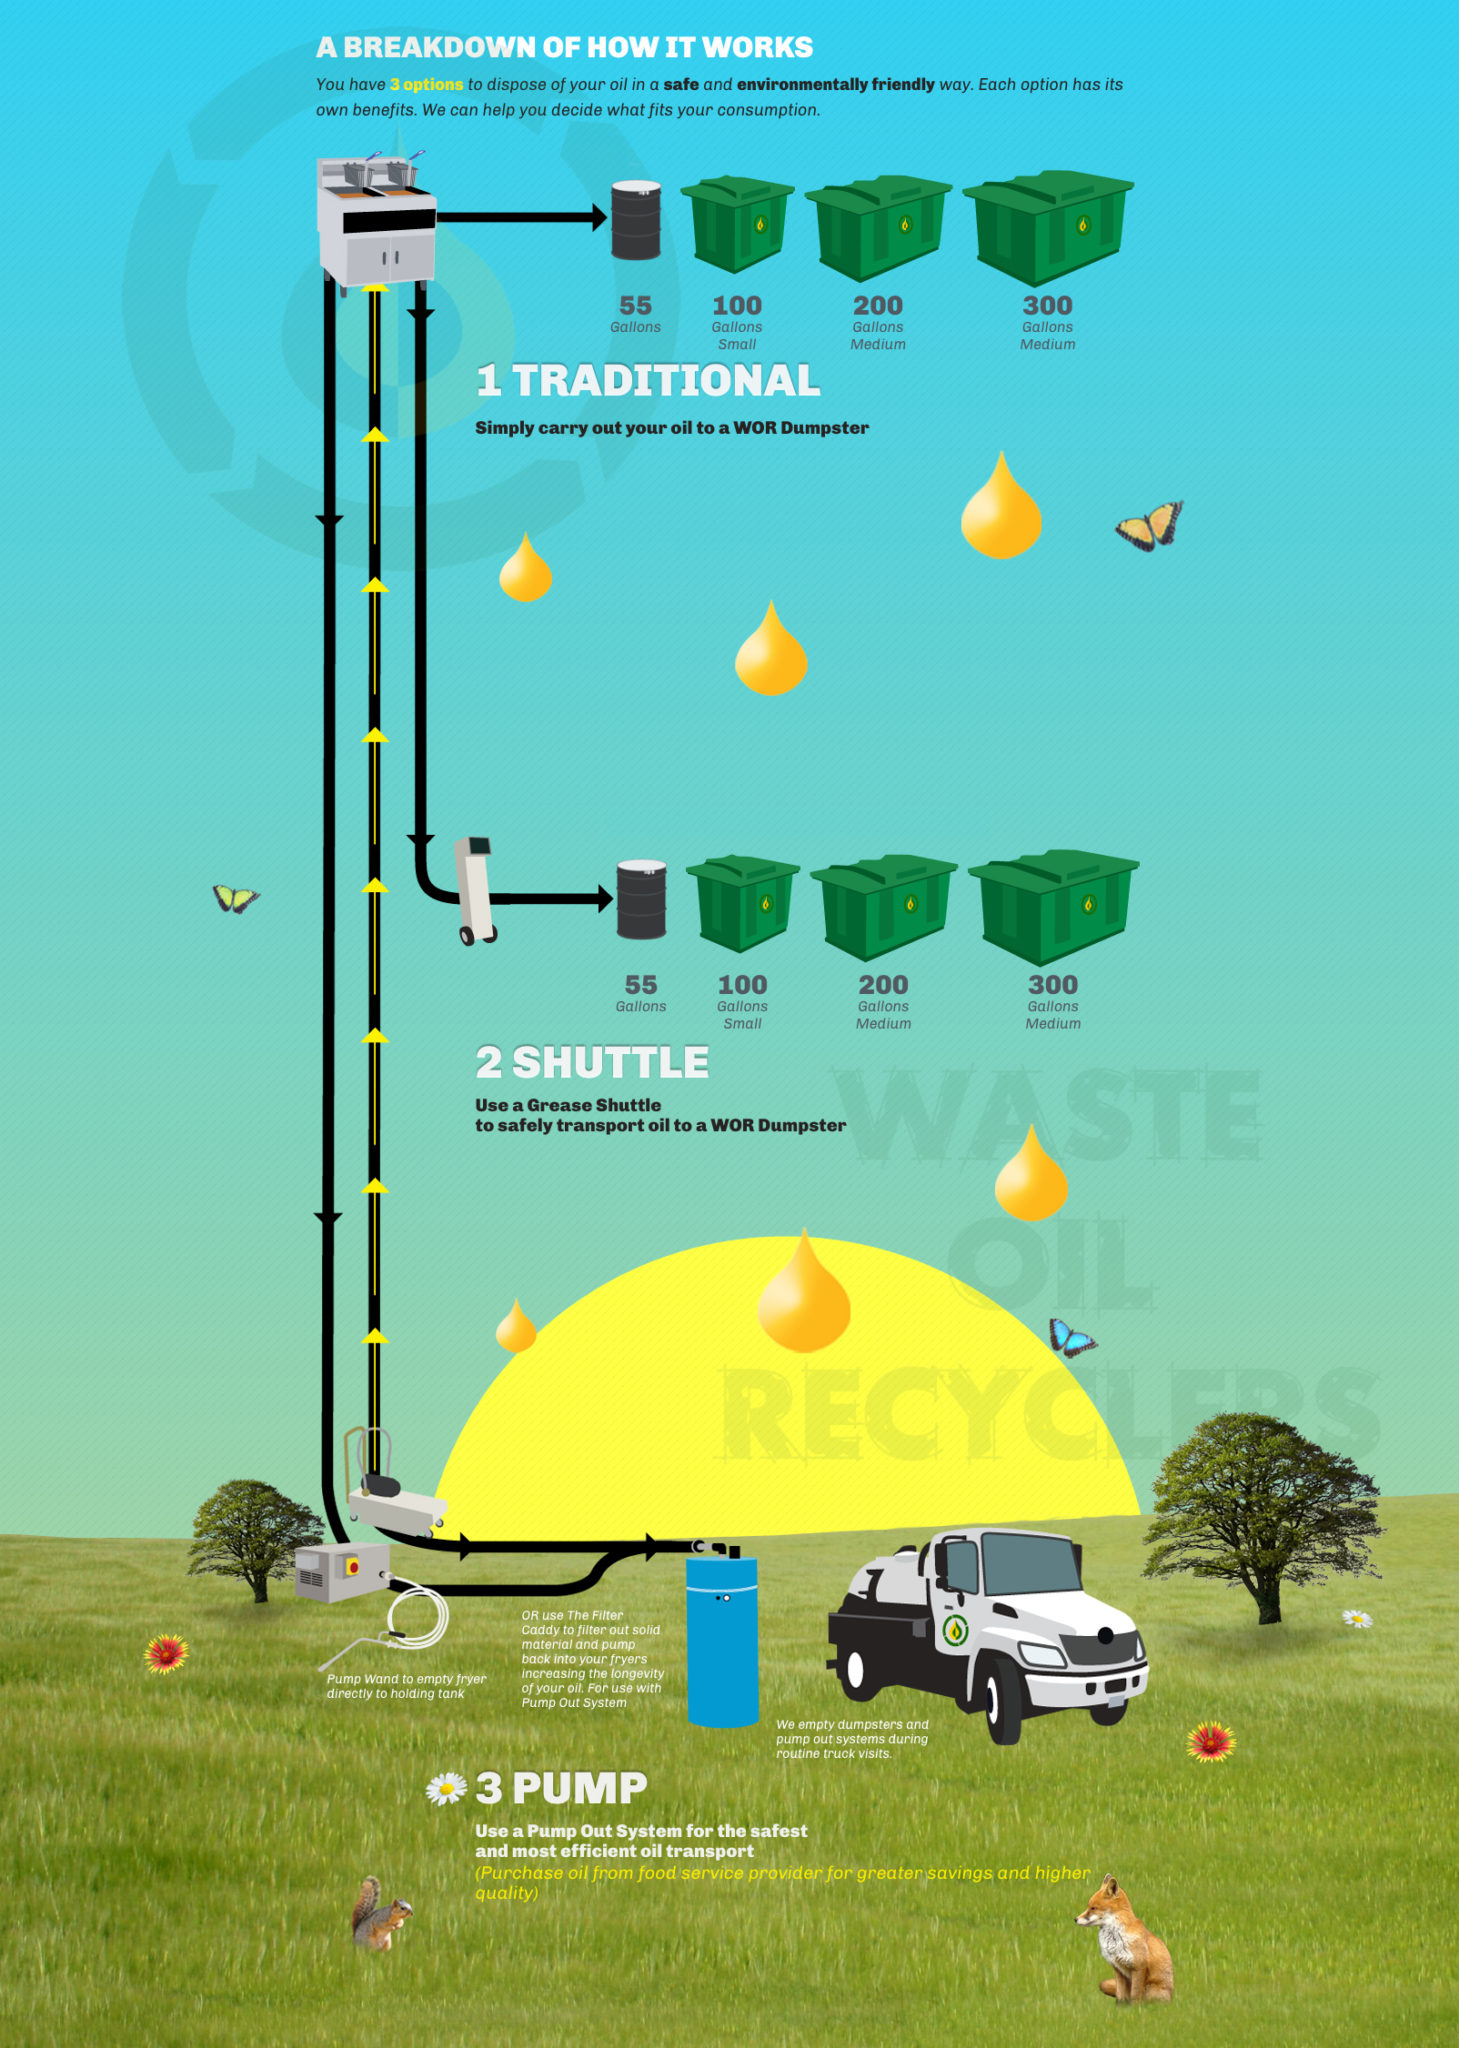 Process of recycling used cooking oil